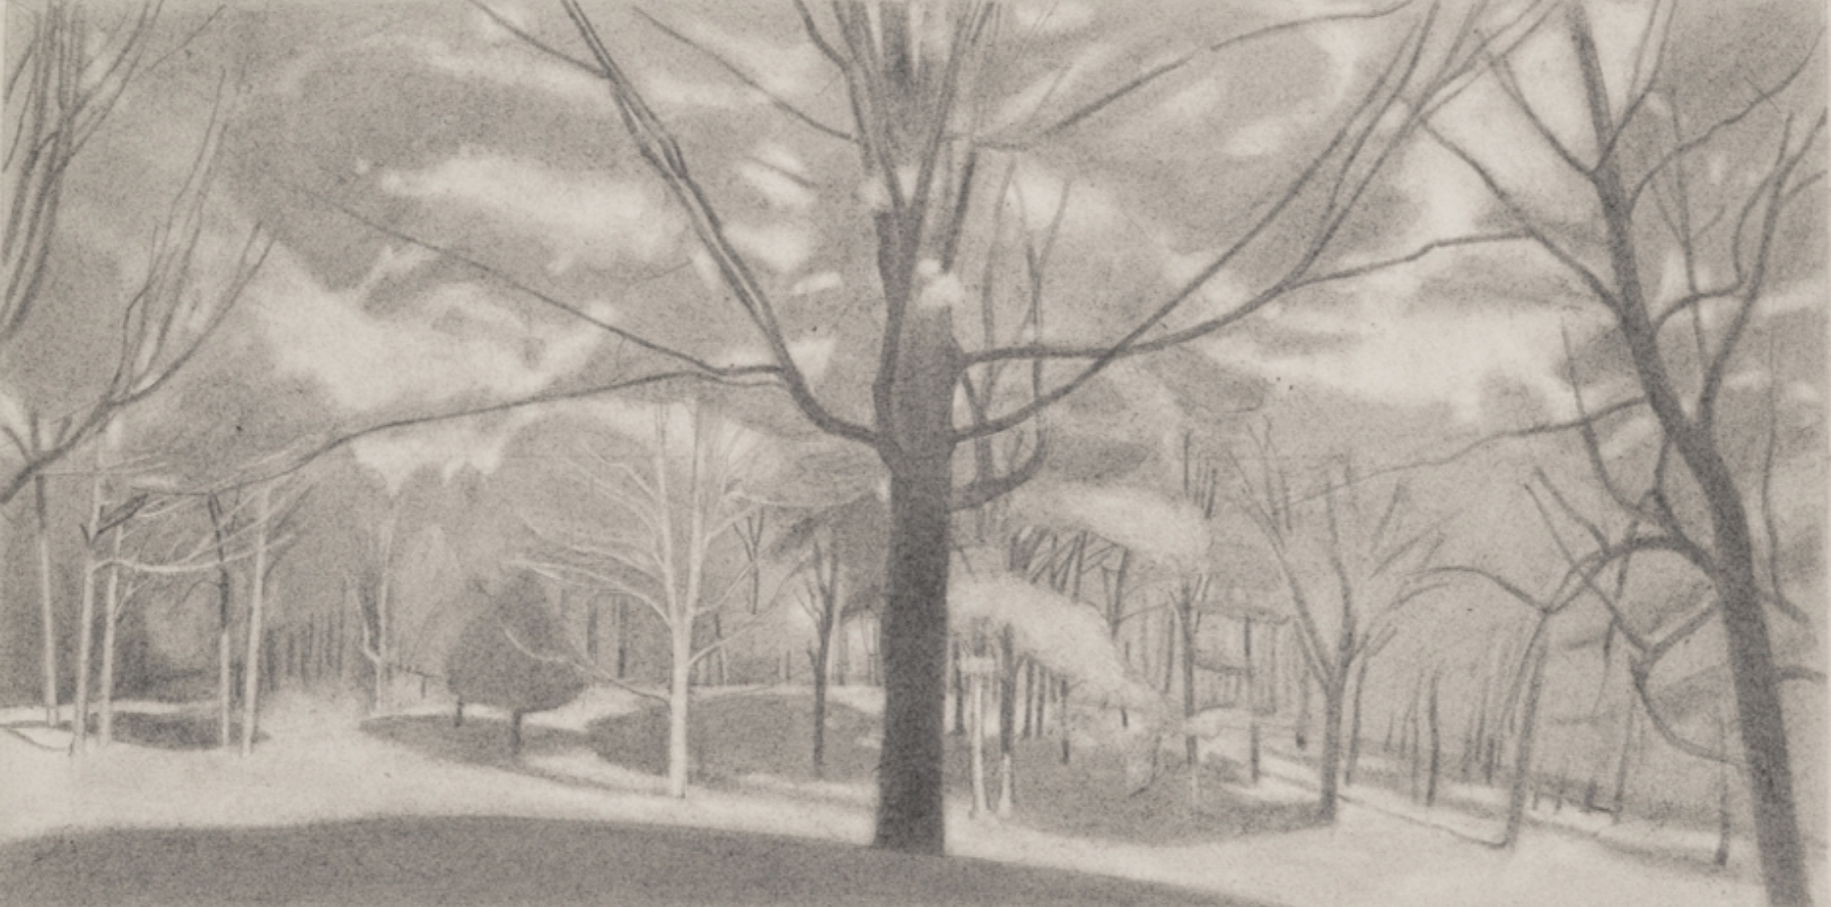 Ron Milewicz, Sugar Maple 2, 2017, pencil on paper, 9 x 18 inches